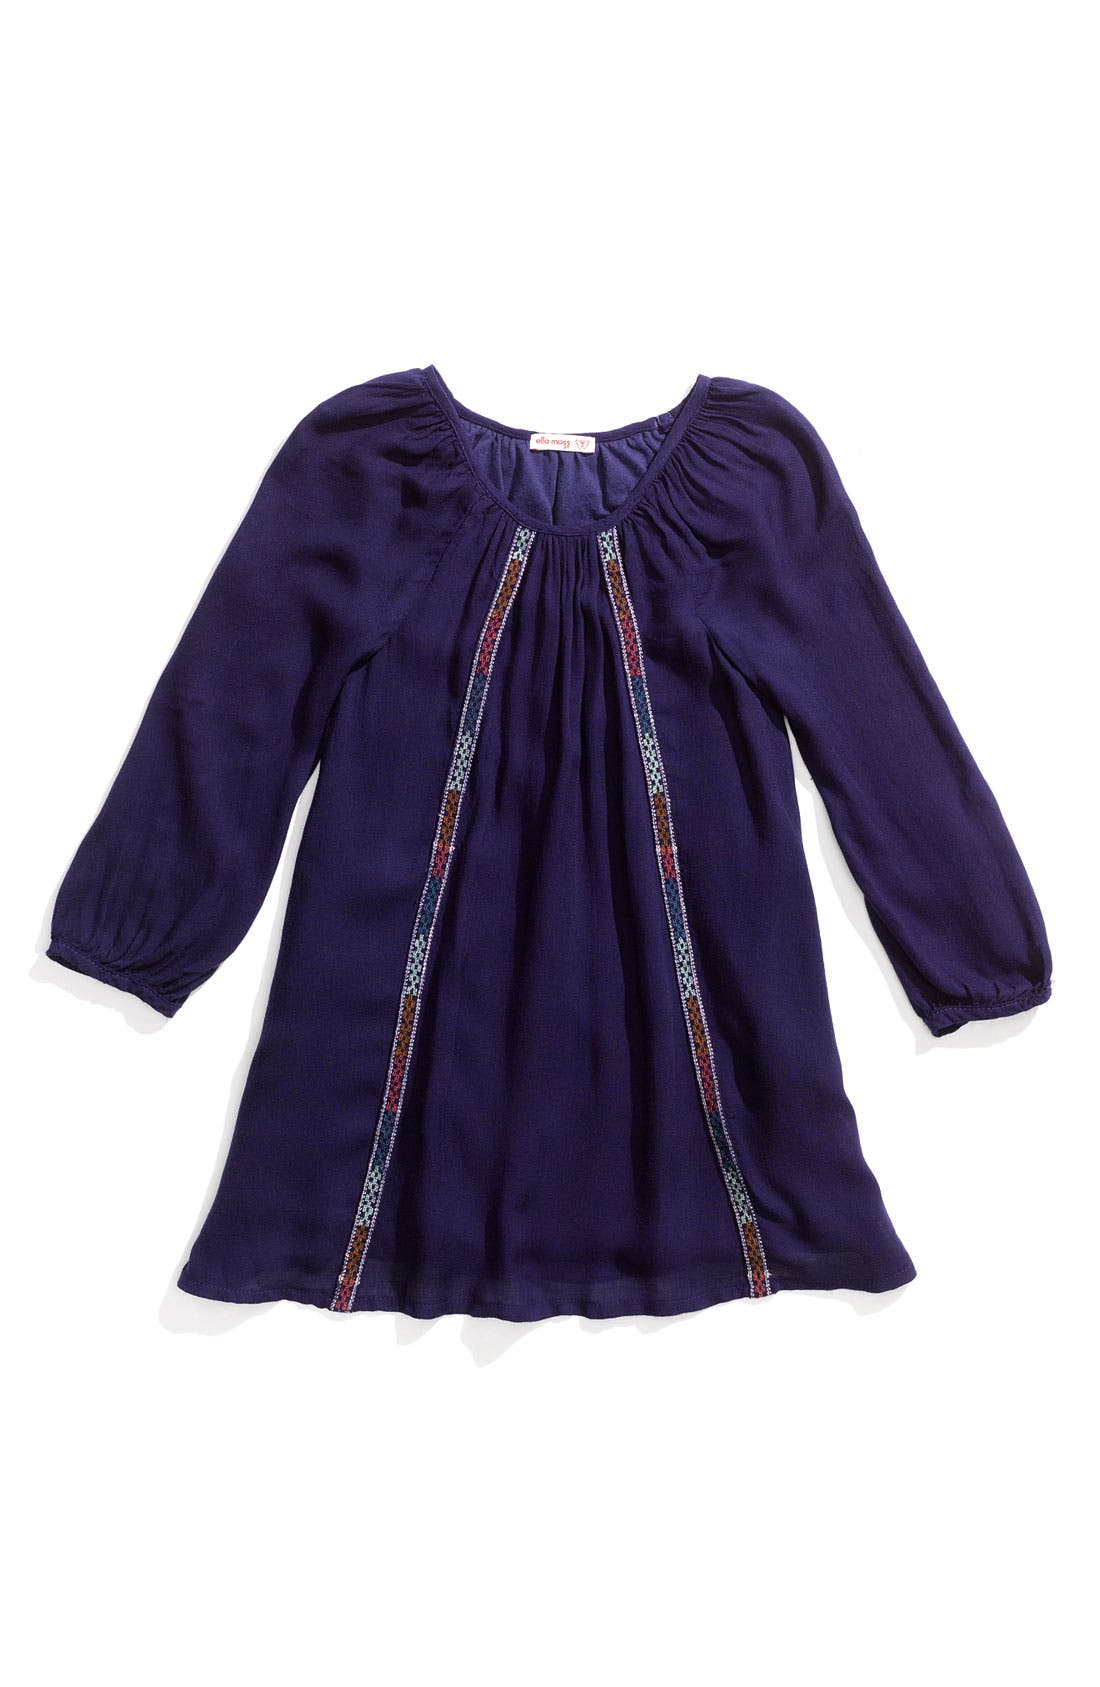 Main Image - Little Ella 'Surrey' Dress (Toddler)